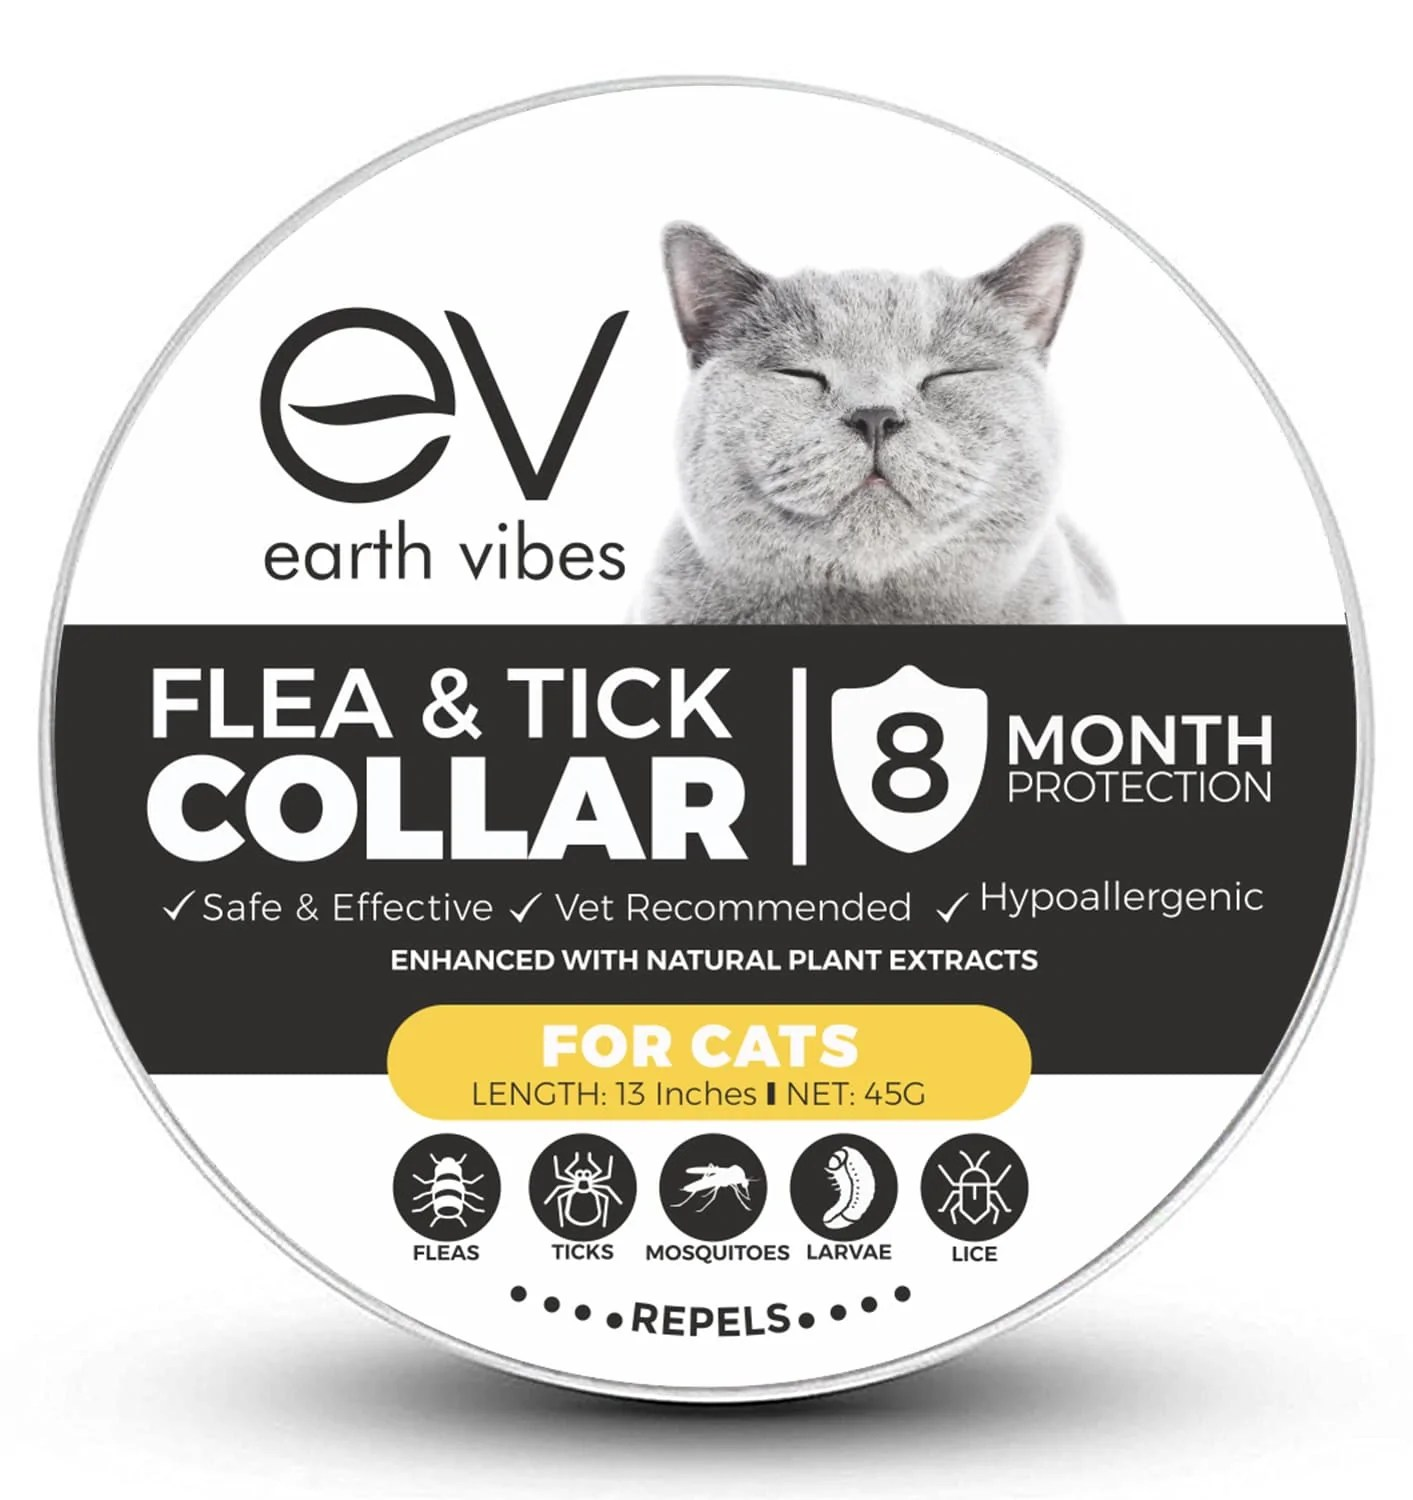 Exceptional Fleas Your House Cats Size Fits All Essential Oils Fleas Bed Bugs Essential Oils Earth Vibes Essential Oil Diffuser Earth Vibes Flea Tick Collar bark post Essential Oils For Fleas